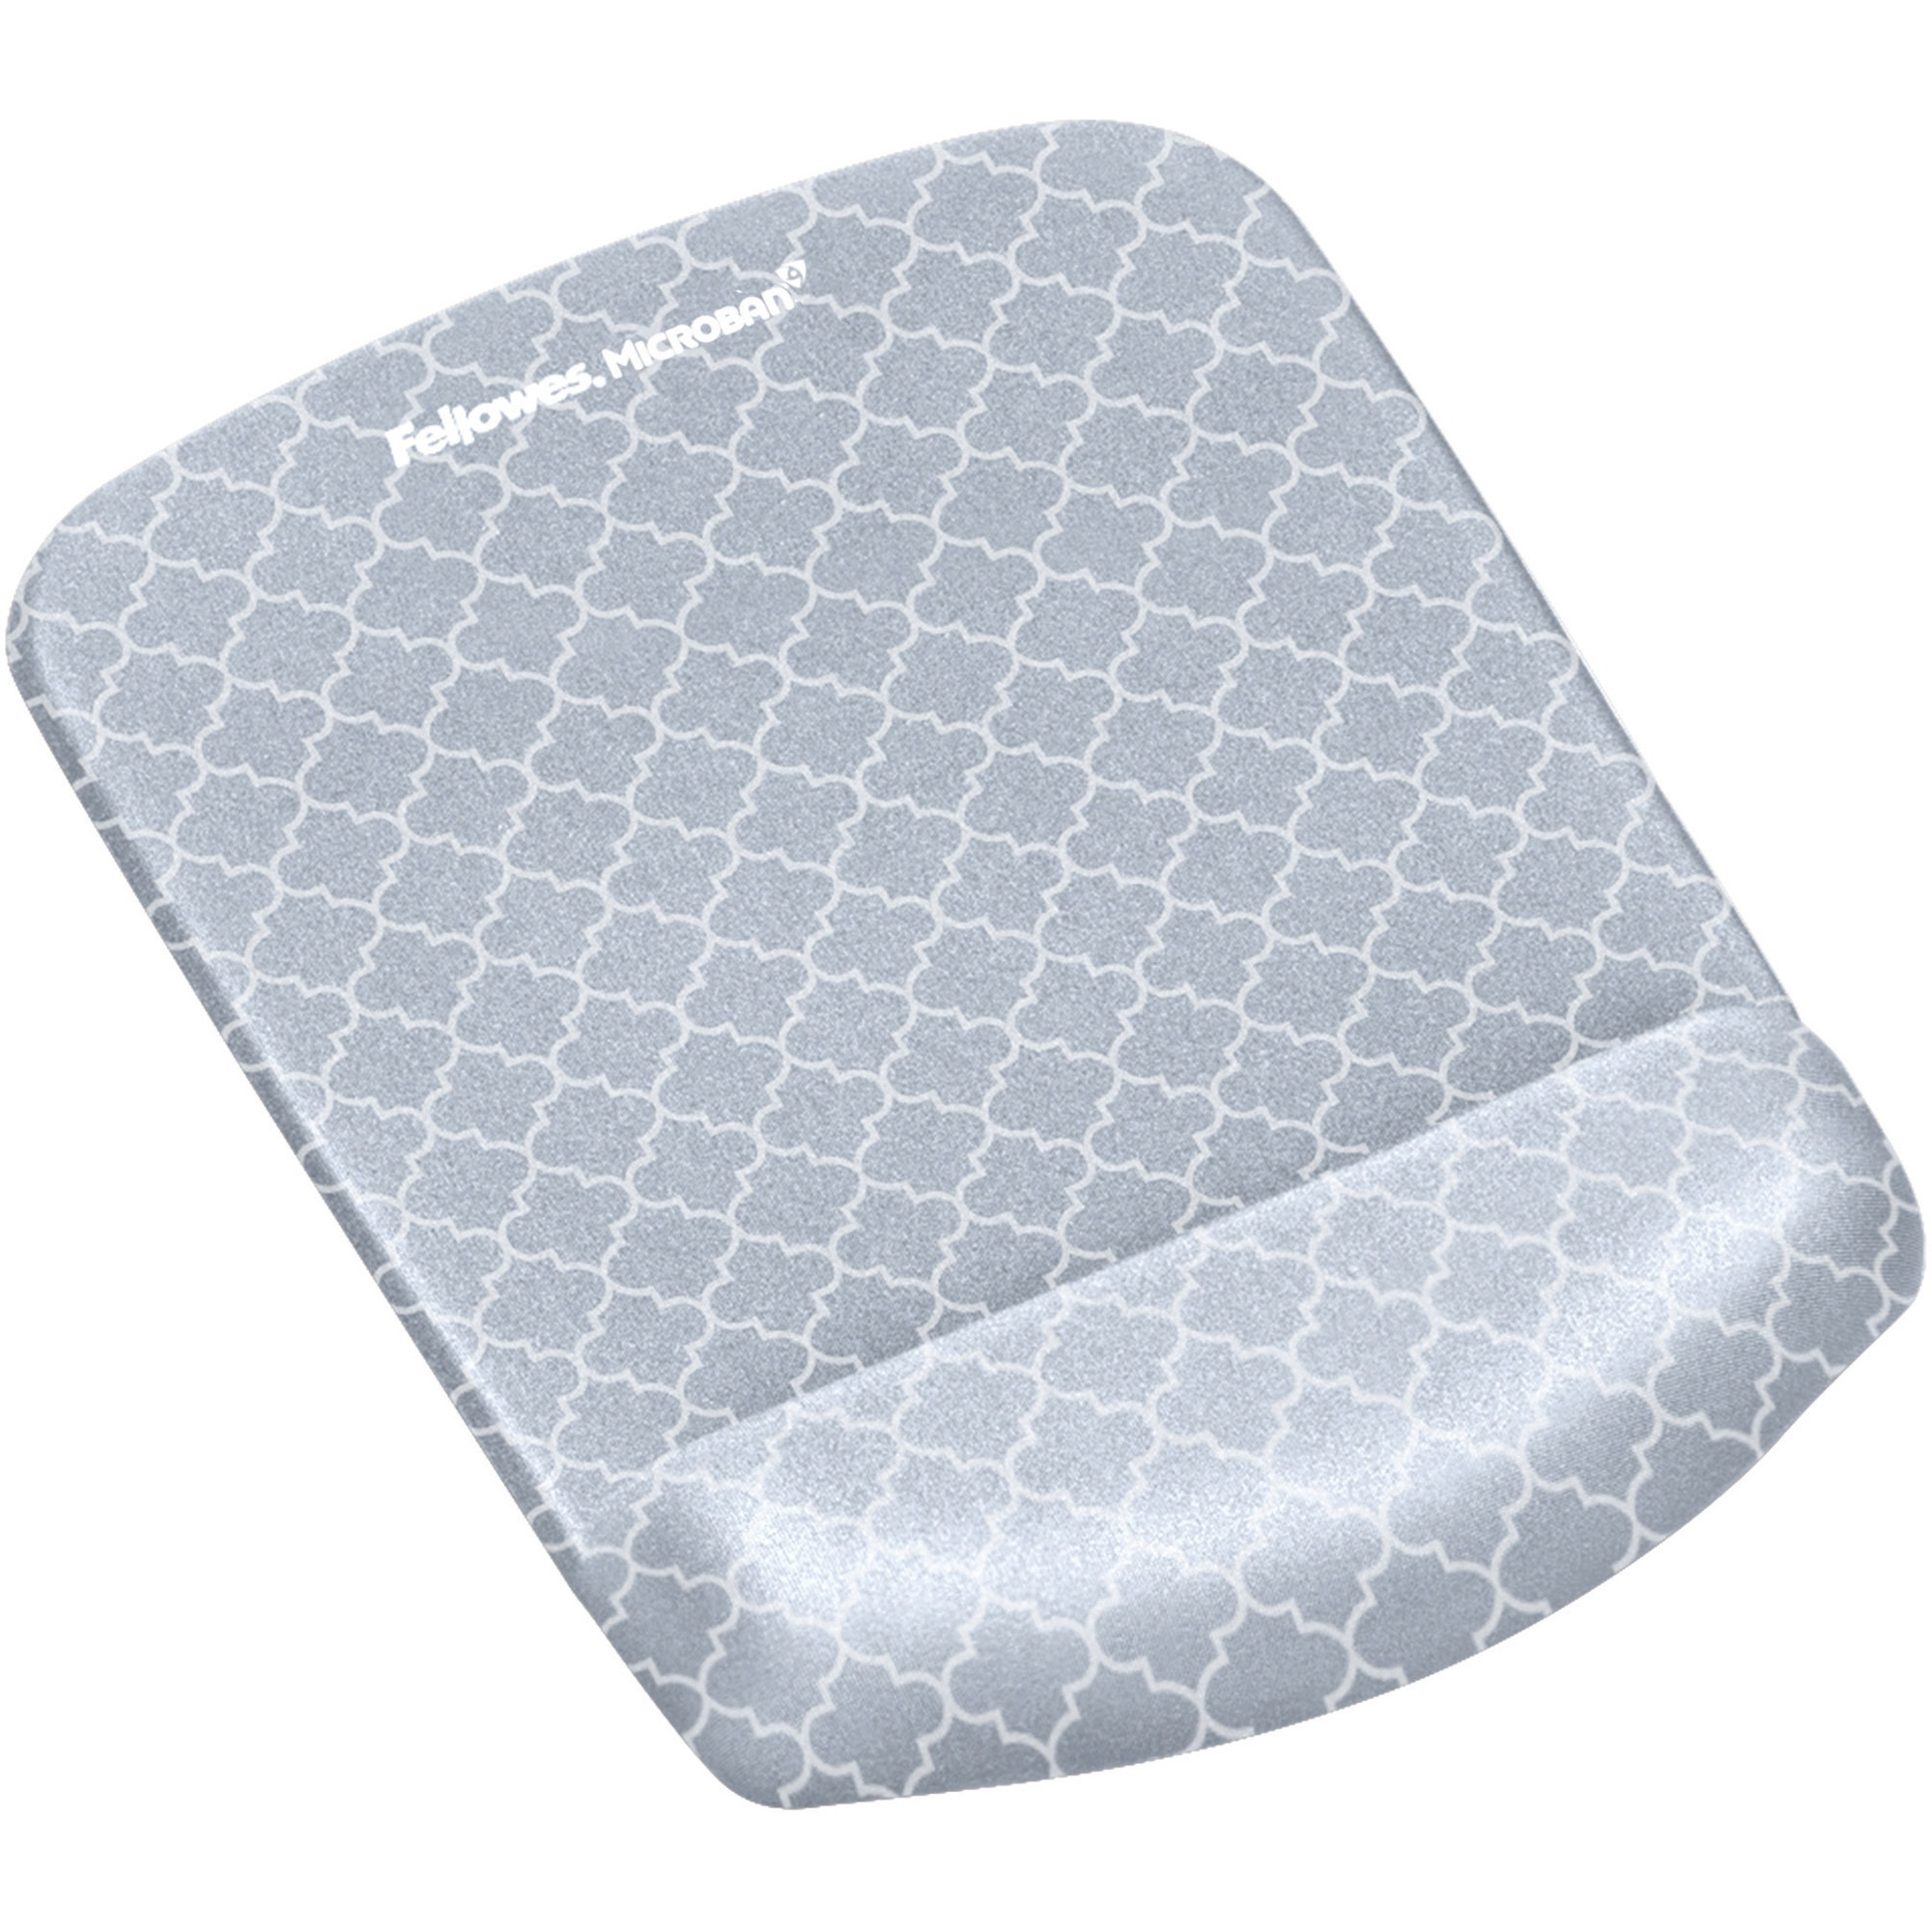 Fellowes, FEL9549701, PlushTouch™ Mouse Pad Wrist Rest with Microban® - Gray Lattice, 1, Gray,White